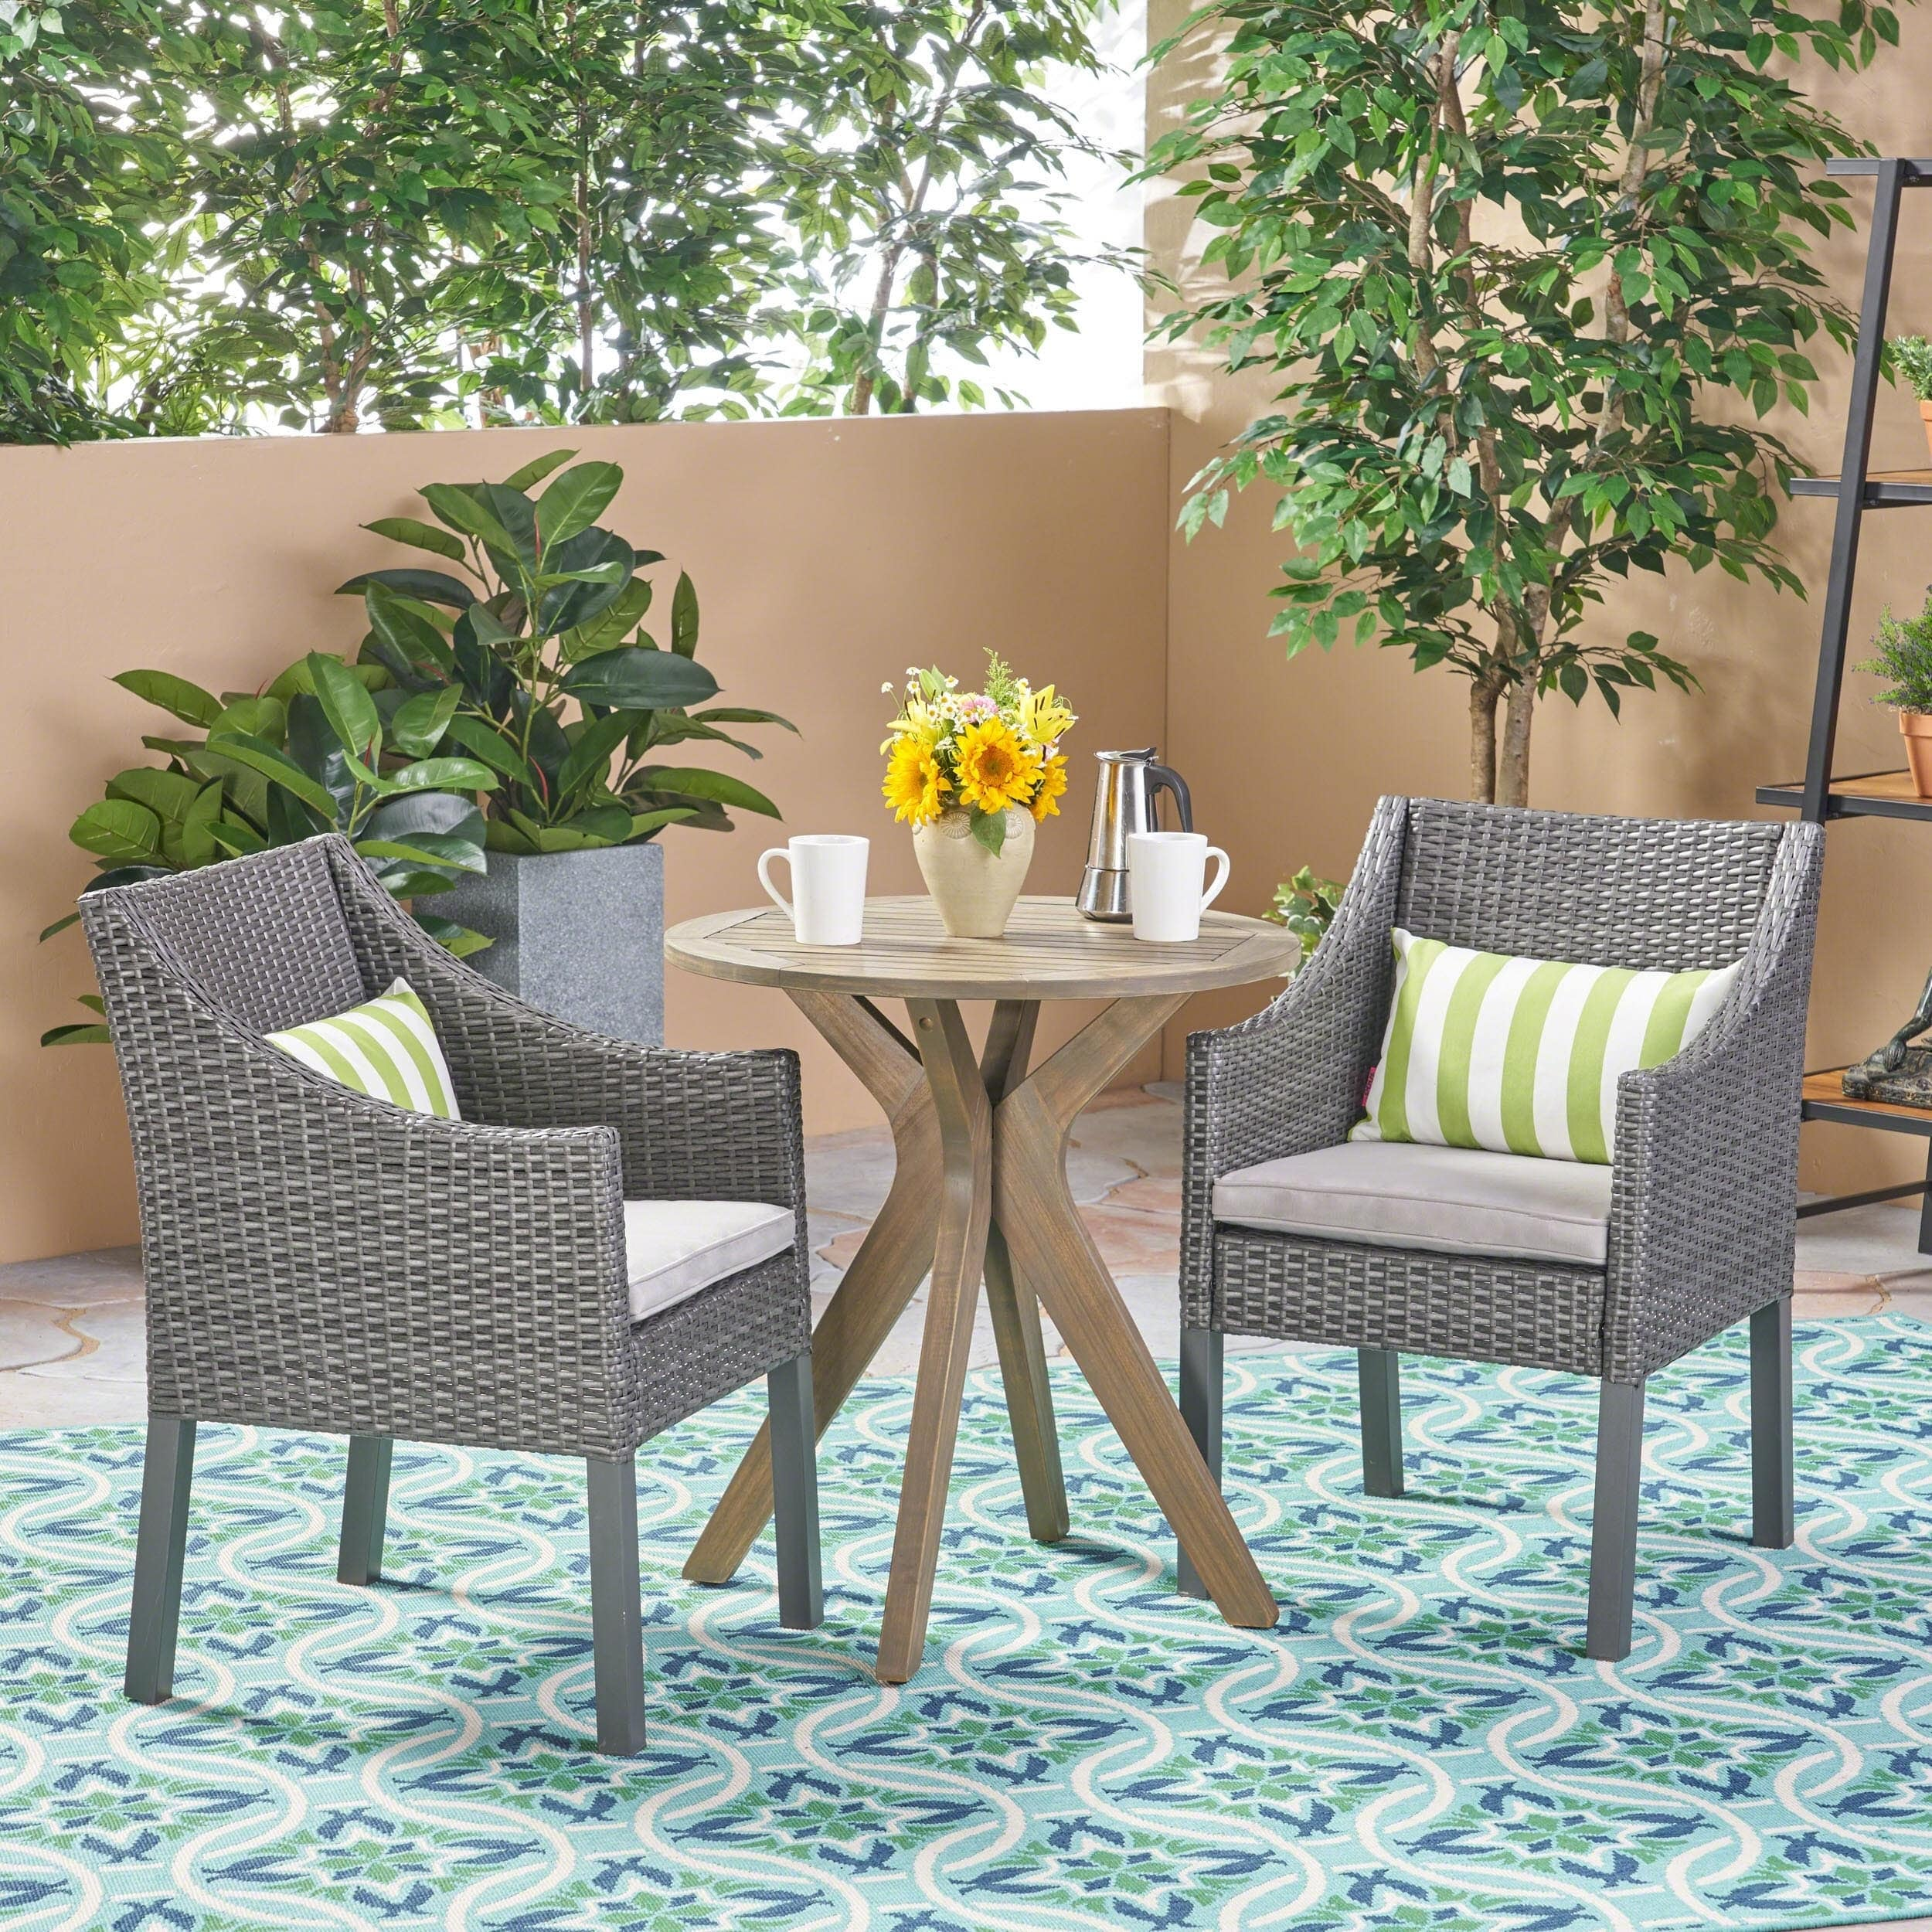 Christopher Knight Home Arrigo Outdoor 3 Piece Acacia Wood and Wicker Bistro Set by